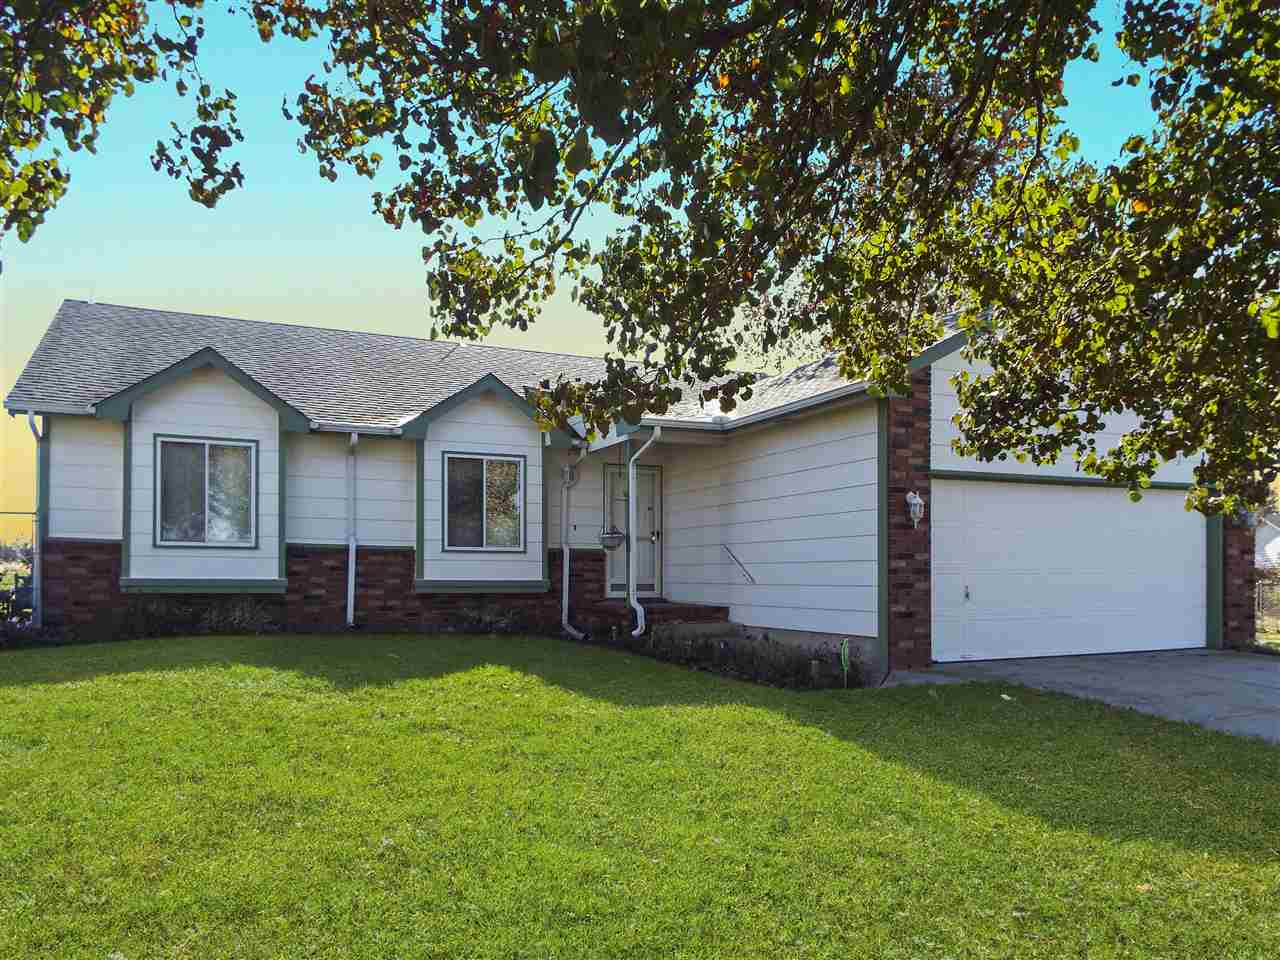 720 N Kansas Ct, Benton, KS 67017